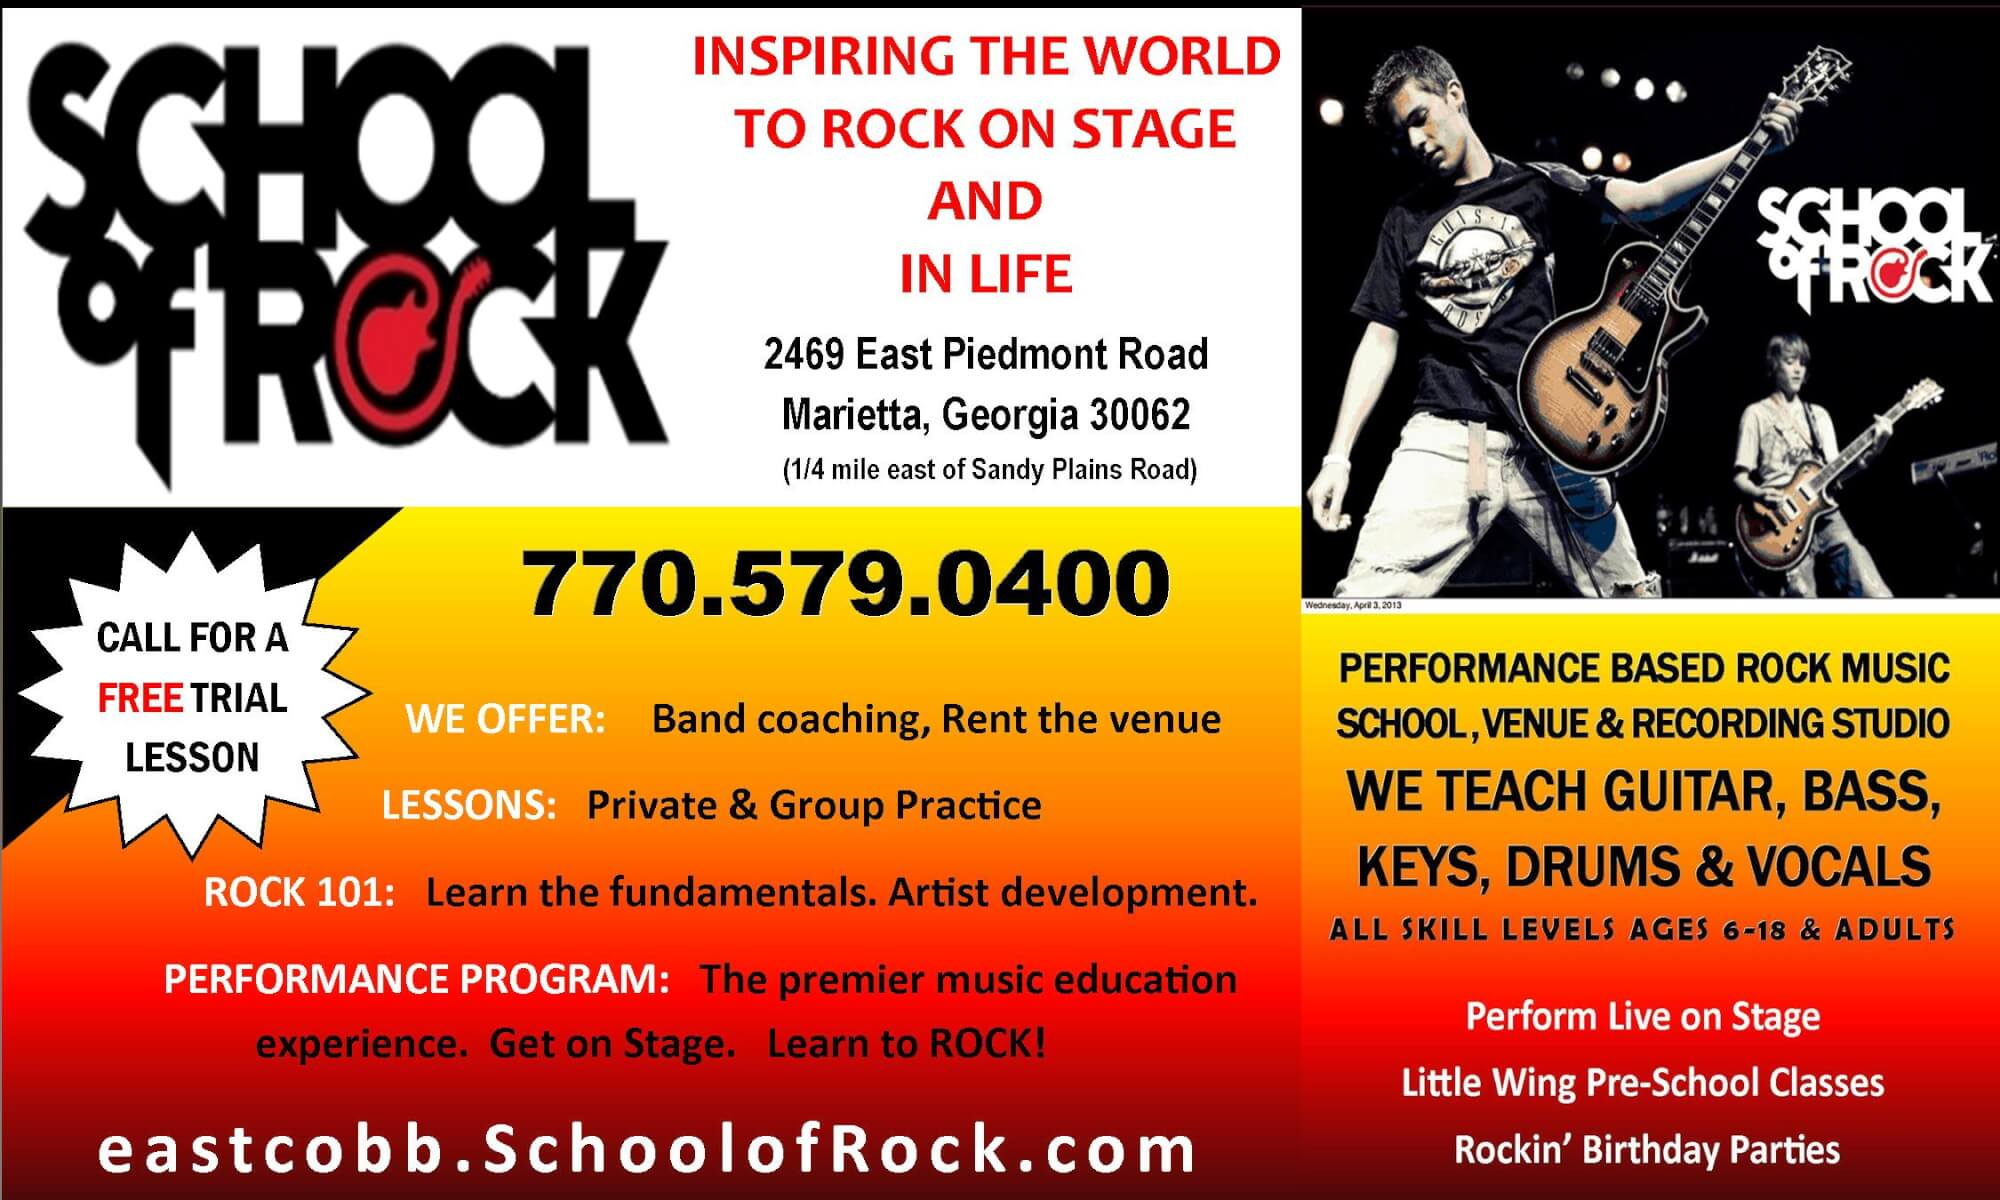 CALL FOR A FREE TRIAL LESSON TODAY!